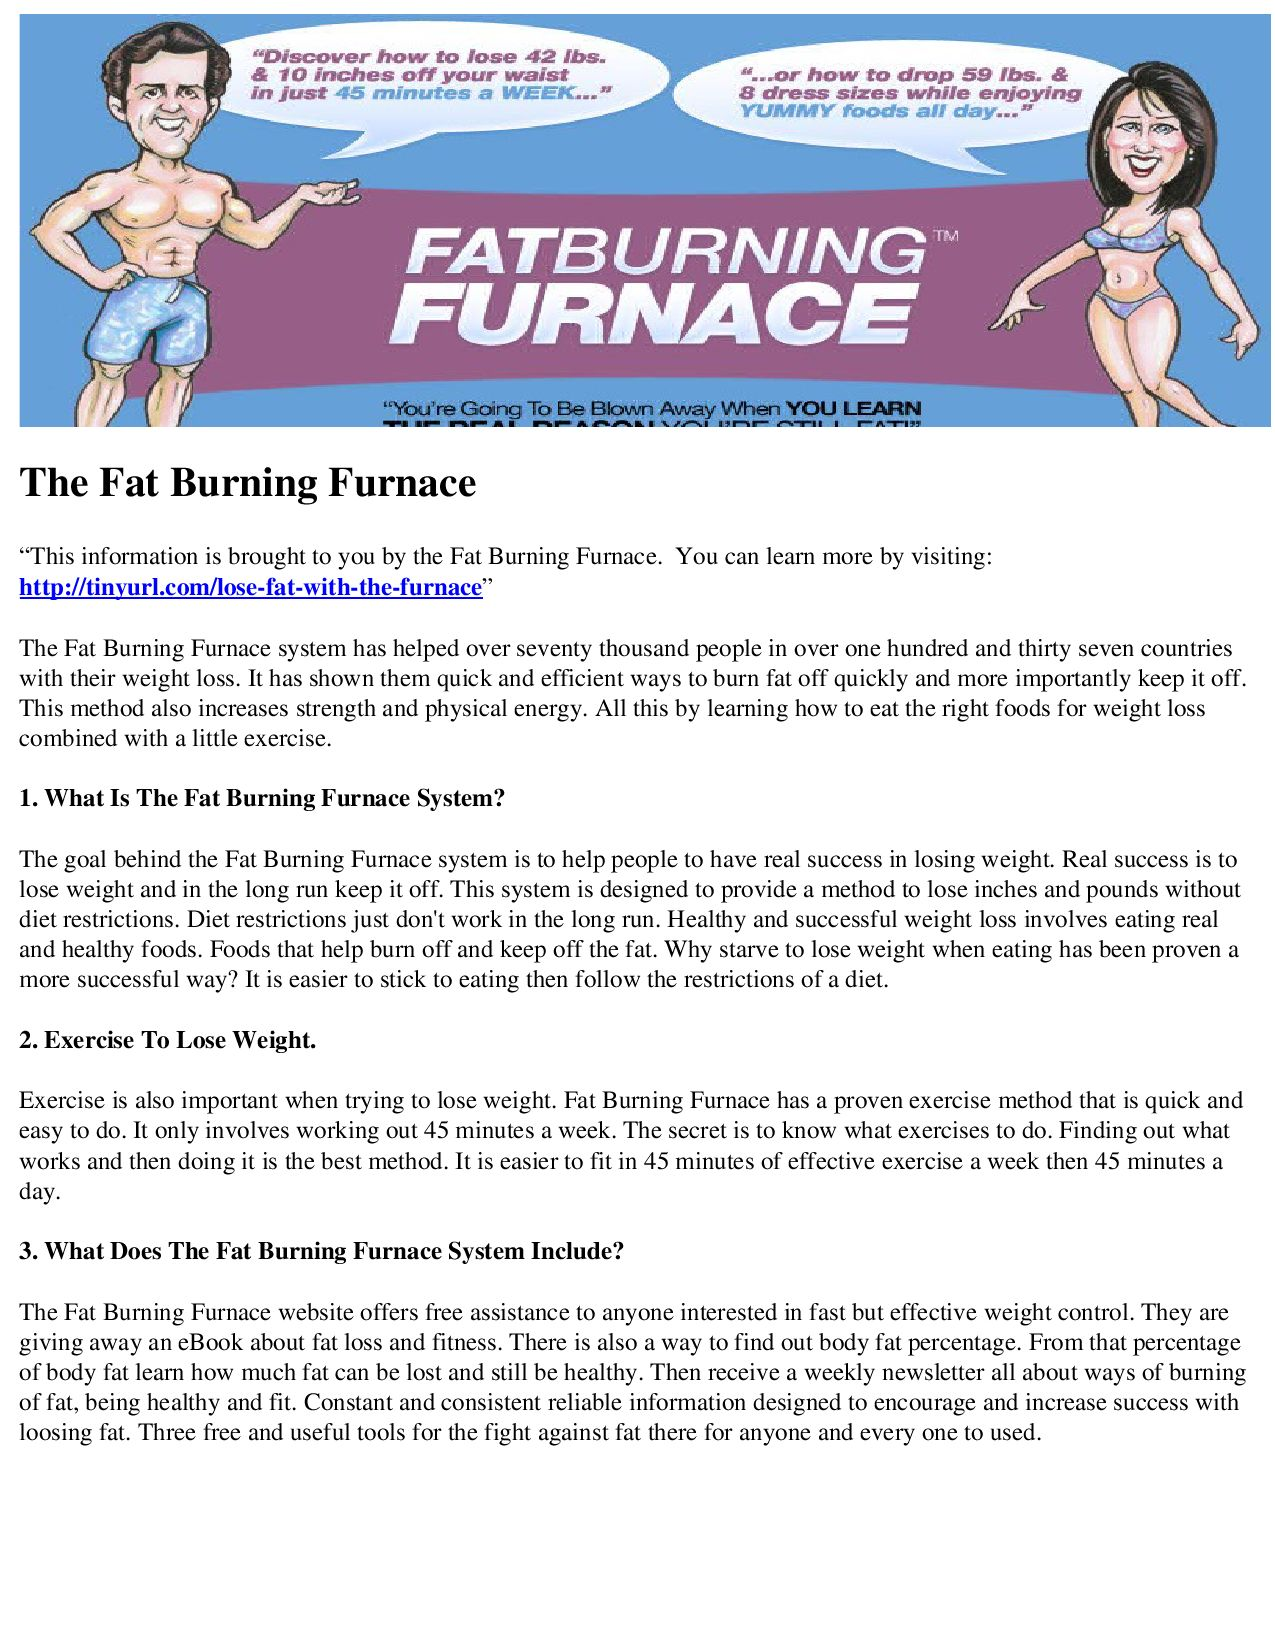 what is the fat burning furnace secret